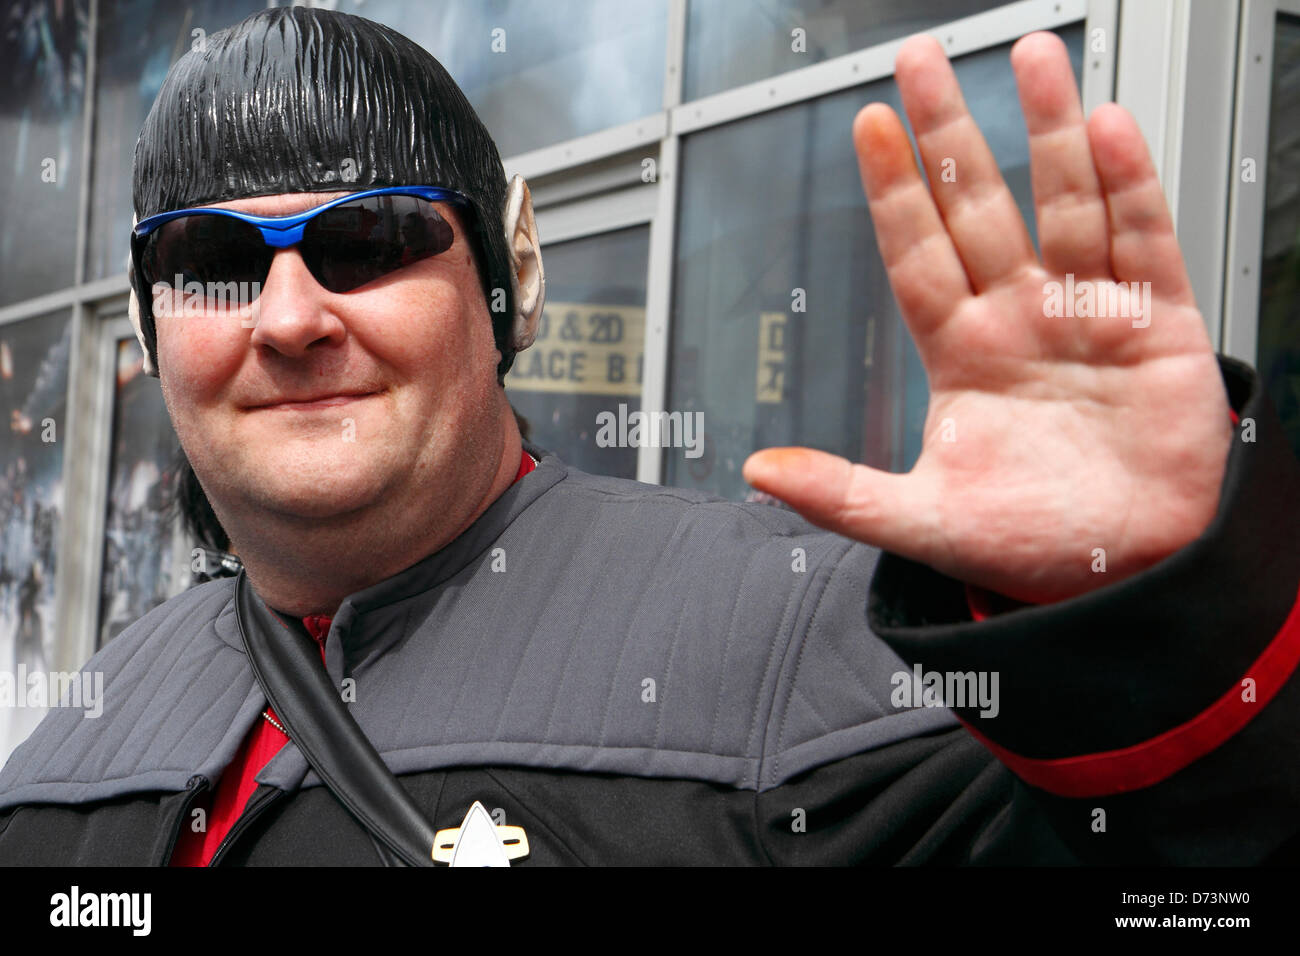 Man dressed as  Mr Spock, Star Trek character participates in 12th Sci-Fi-London costume parade, Stratford, London, - Stock Image